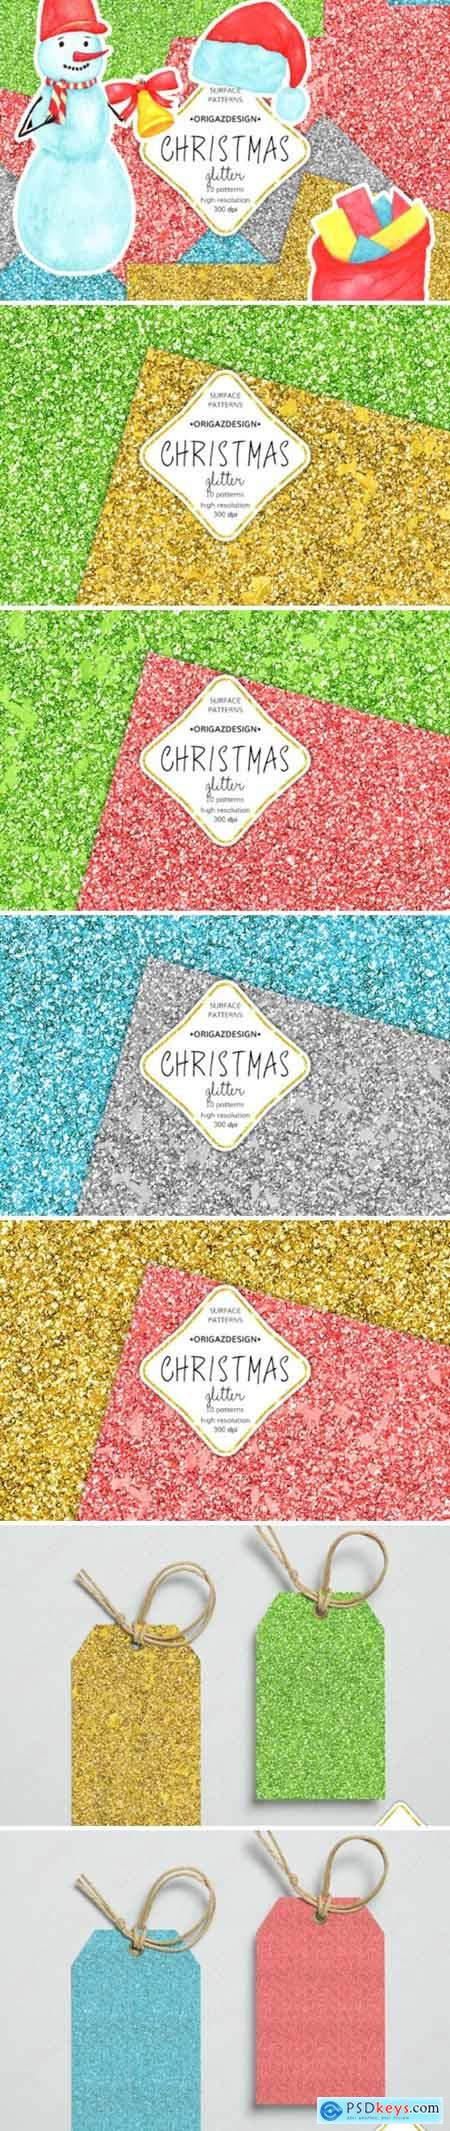 Christmas Glitter Seamless Pattern 2194585